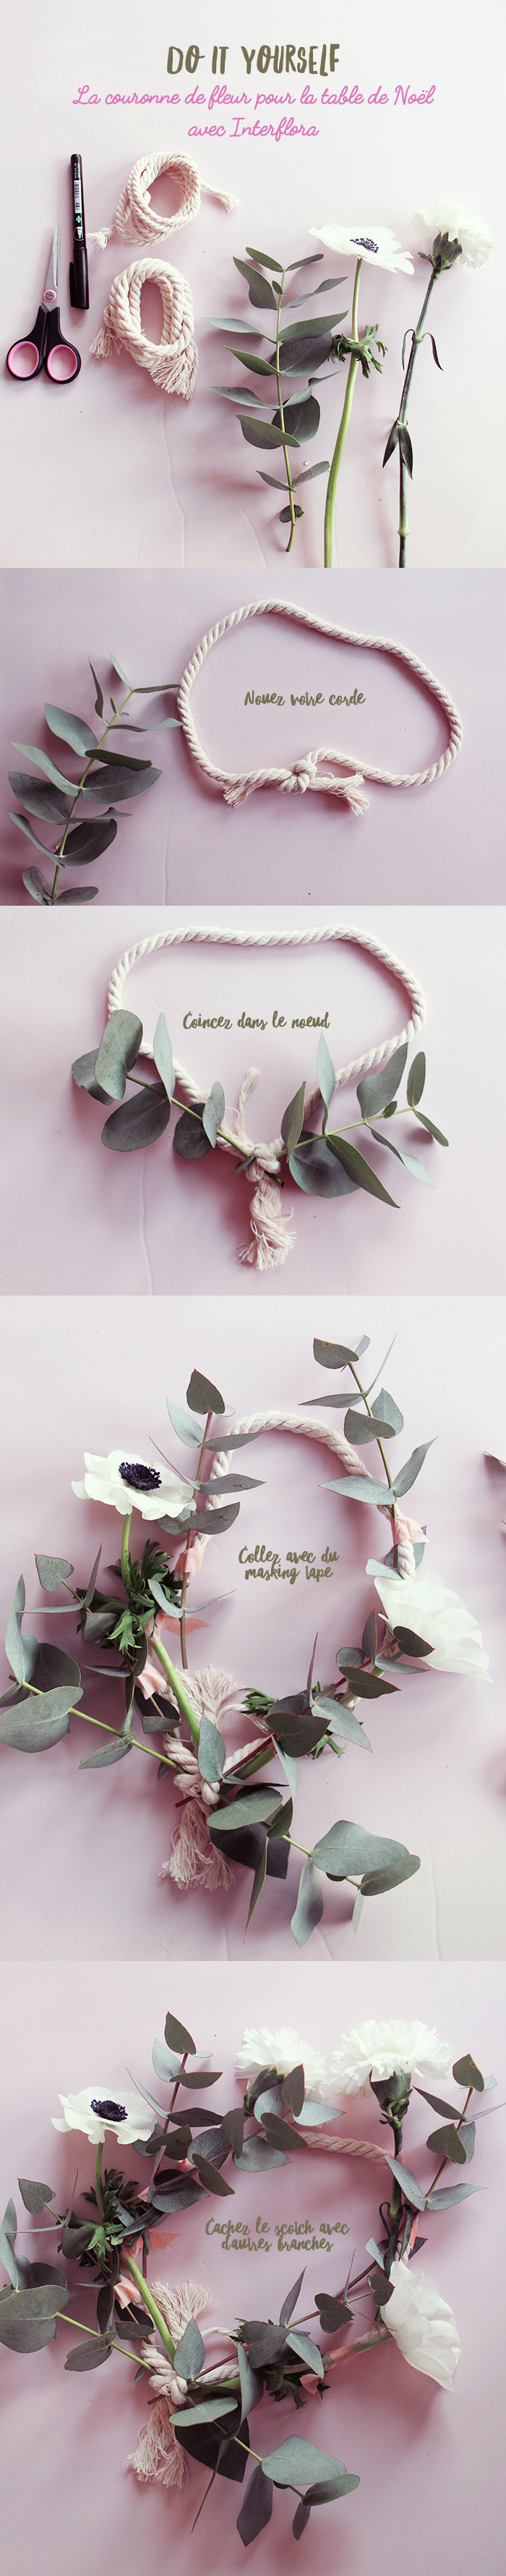 interflora diy couronne poulette magique